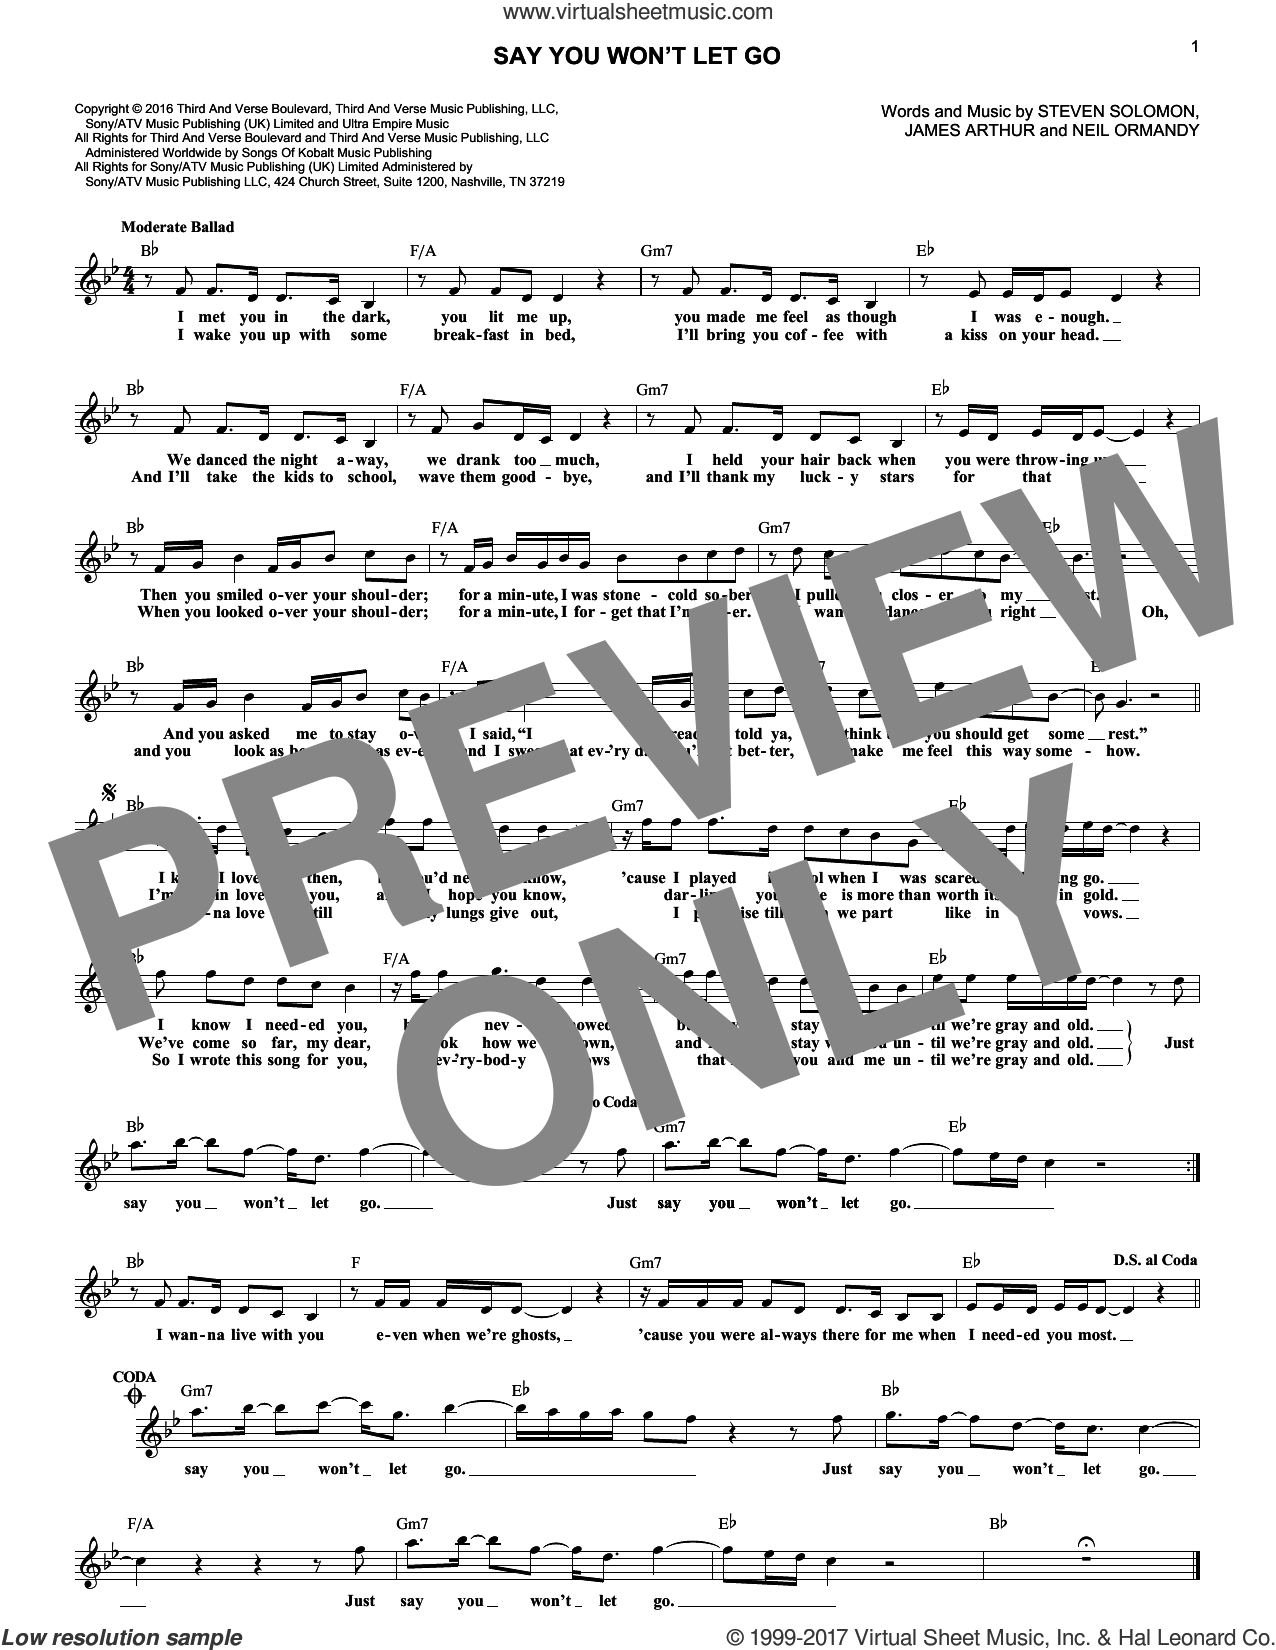 Say You Won't Let Go sheet music for voice and other instruments (fake book) by James Arthur, Neil Ormandy and Steve Solomon, intermediate. Score Image Preview.